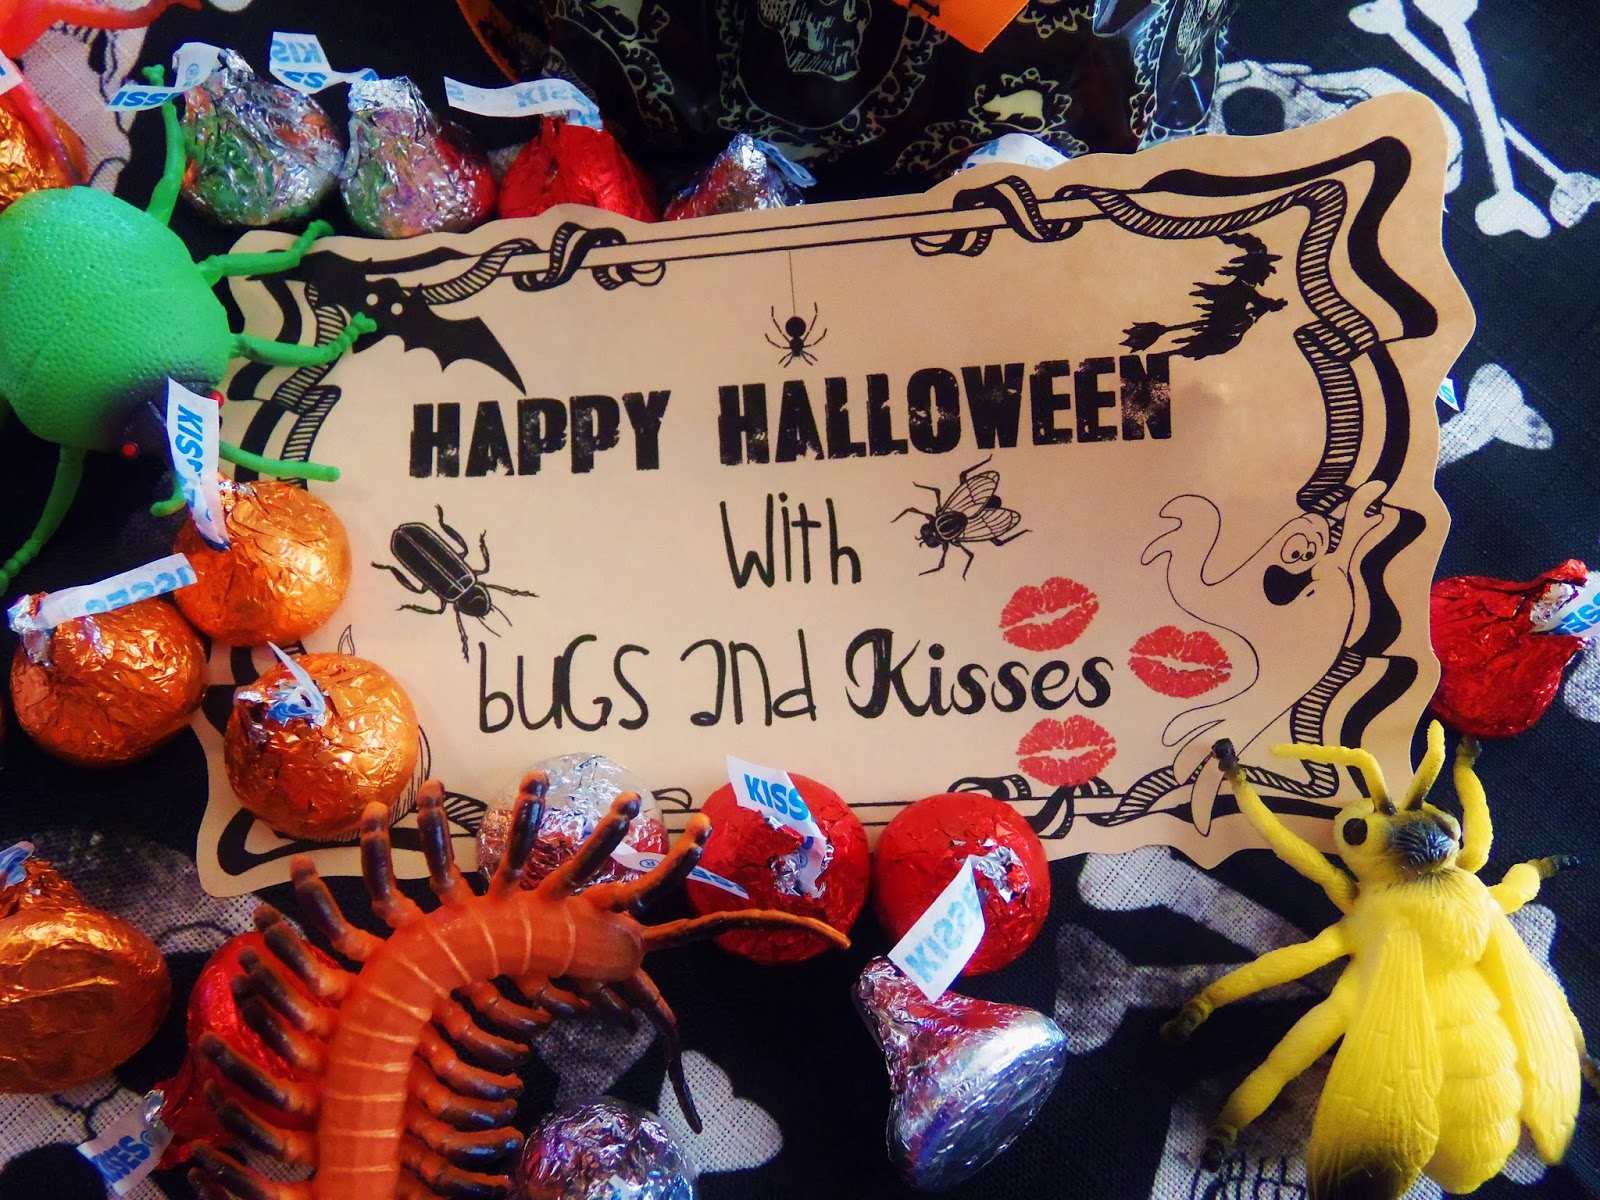 image relating to Bugs and Kisses Printable identified as HollysHome Relatives Lifestyle: Insects and Kisses - a Free of charge Halloween